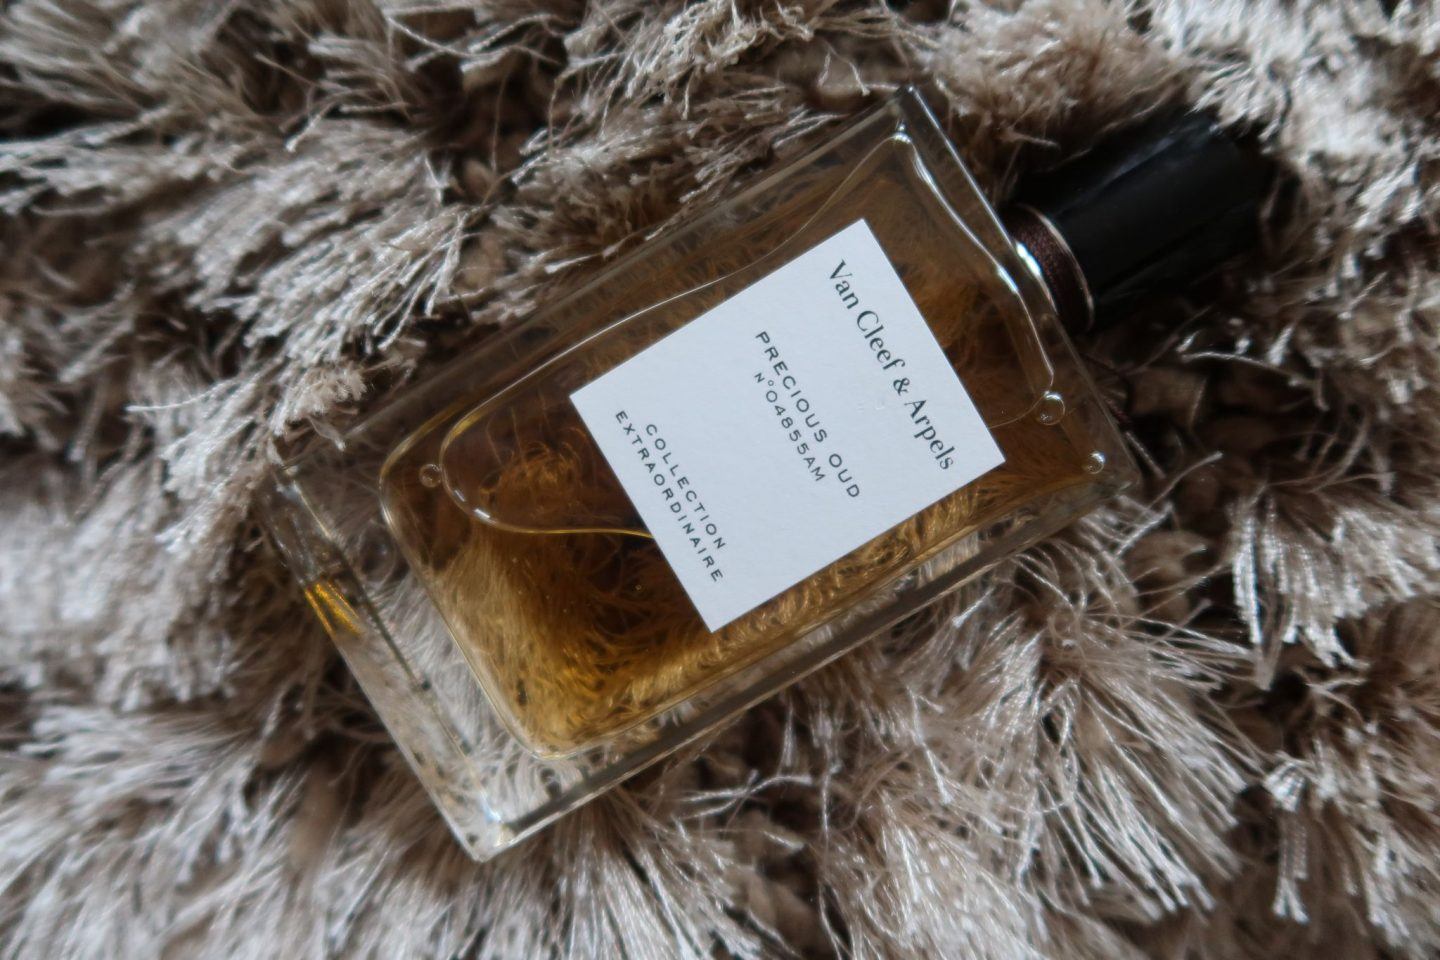 Van Cleef and Arpels Precious Review on UK Perfume Blogger WhatLauraLoves